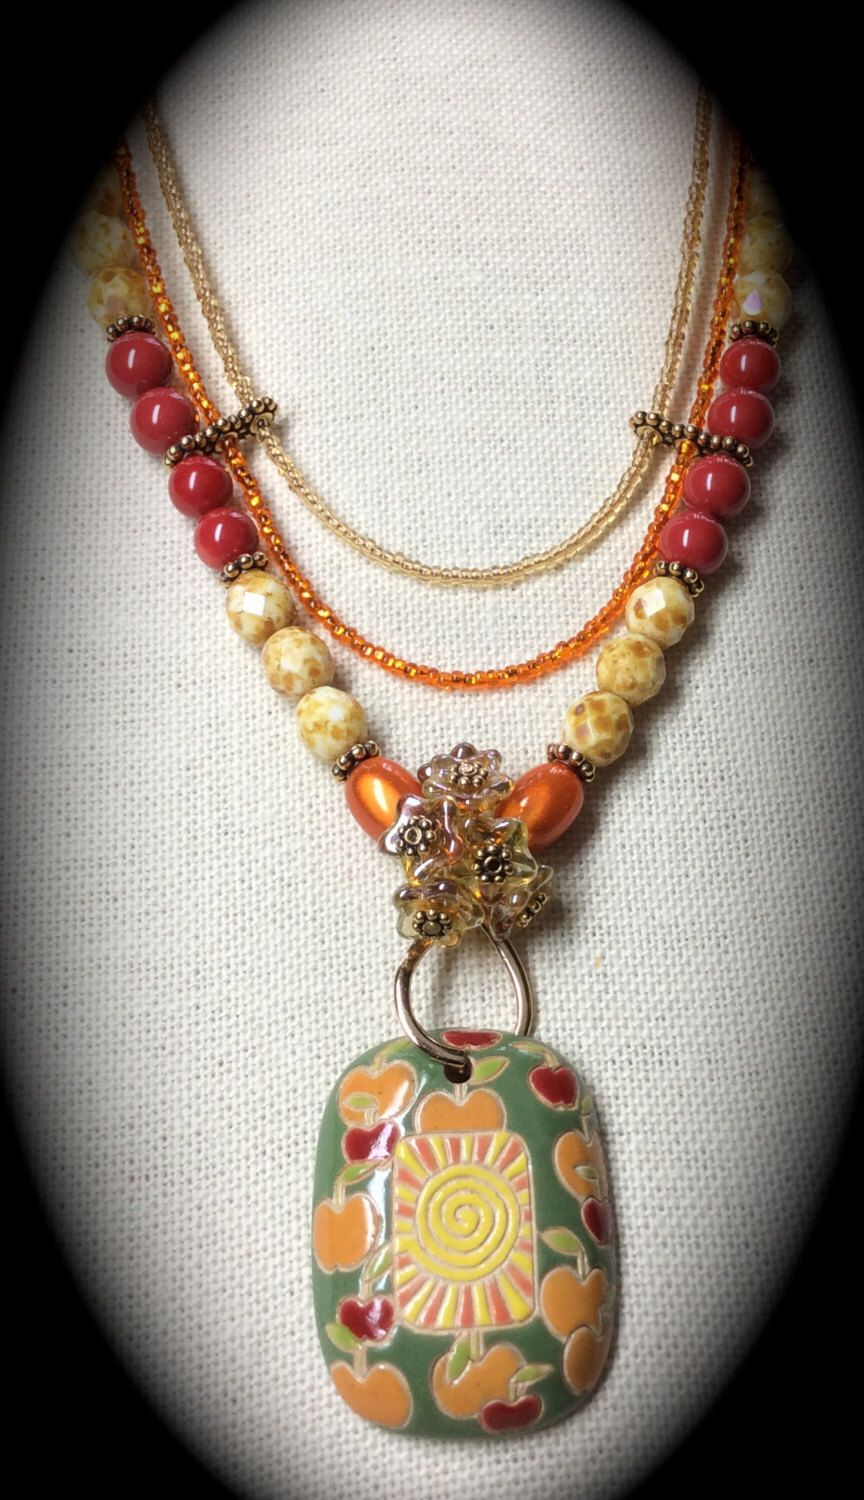 "Red coral crystal pearls, Picasso beads, glass flowers and Orange ""Miracle Beads all come together with bright seed bead strands to grab the apples and oranges on this hand-painted porcelain pendant, done exclusively by Russian artist, Golem. Perfect for a cool Autumn day, with the smell of wood-burning fireplaces in the air, leaves falling, and you wearing a warm turtle neck sweater, highlighting this beautiful Finales creation... a one-of-a-kind!"